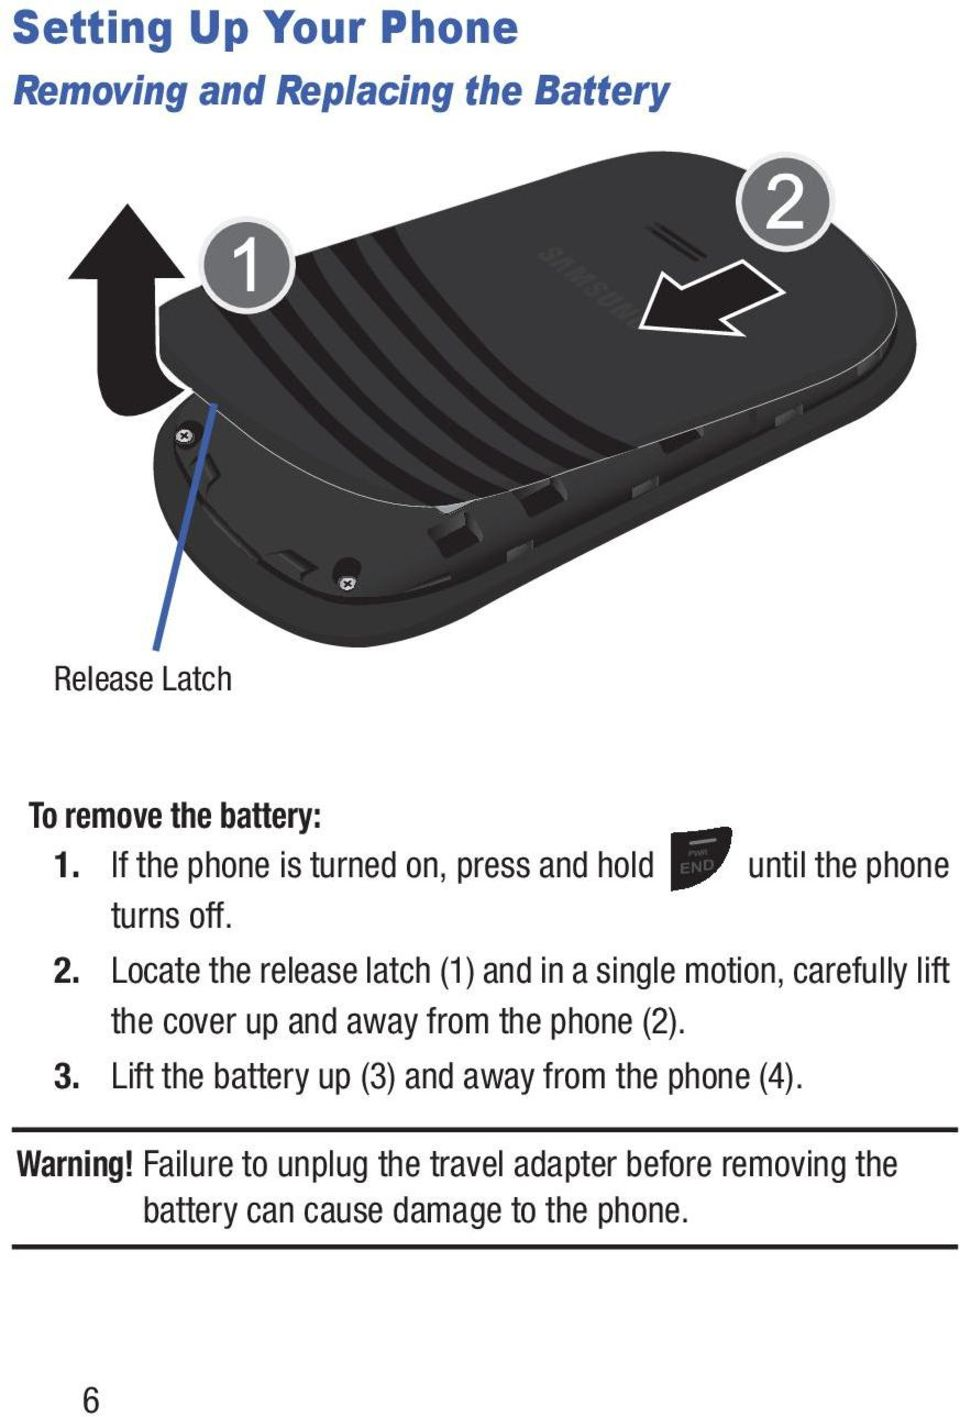 Locate the release latch (1) and in a single motion, carefully lift the cover up and away from the phone (2). 3.